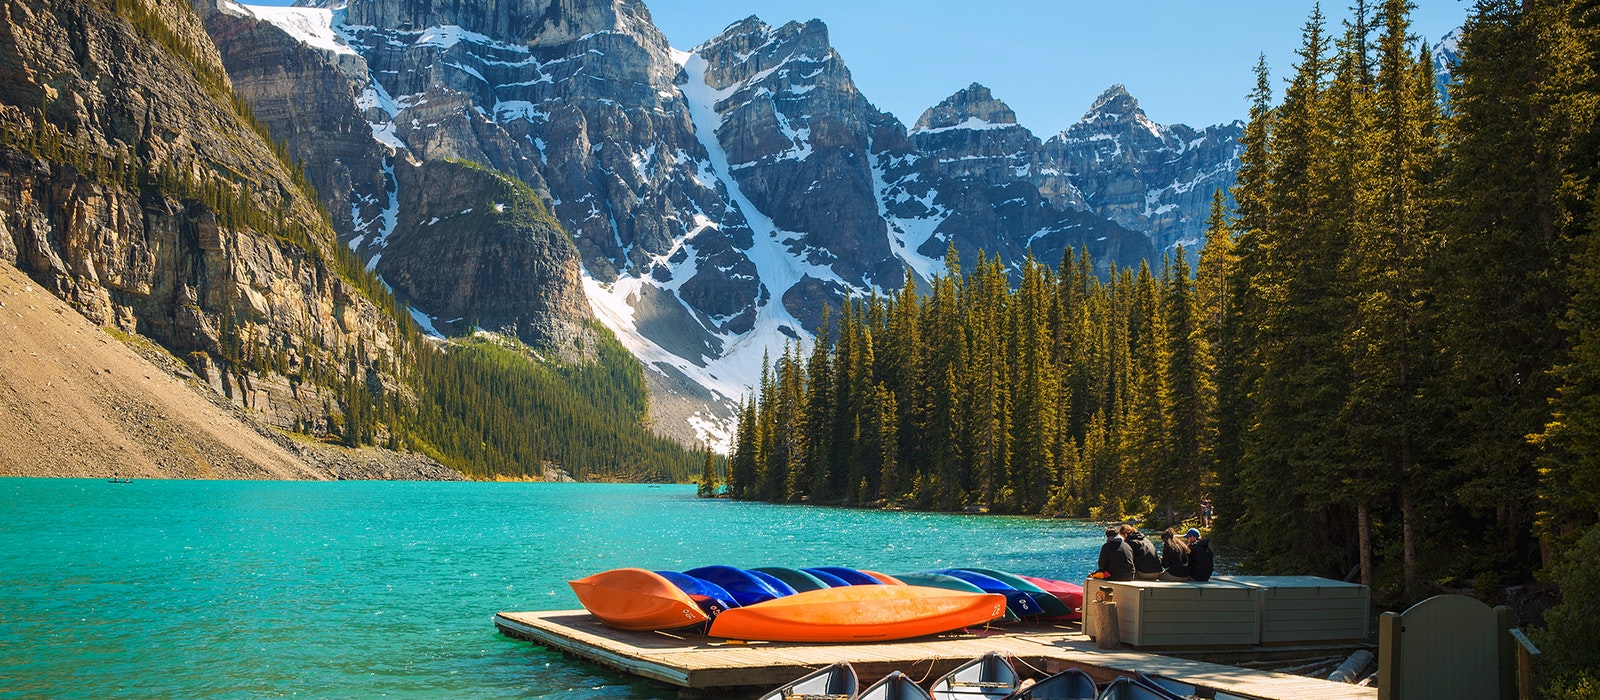 Finding your favorite time to visit these pristine mountains may require some experimentation.